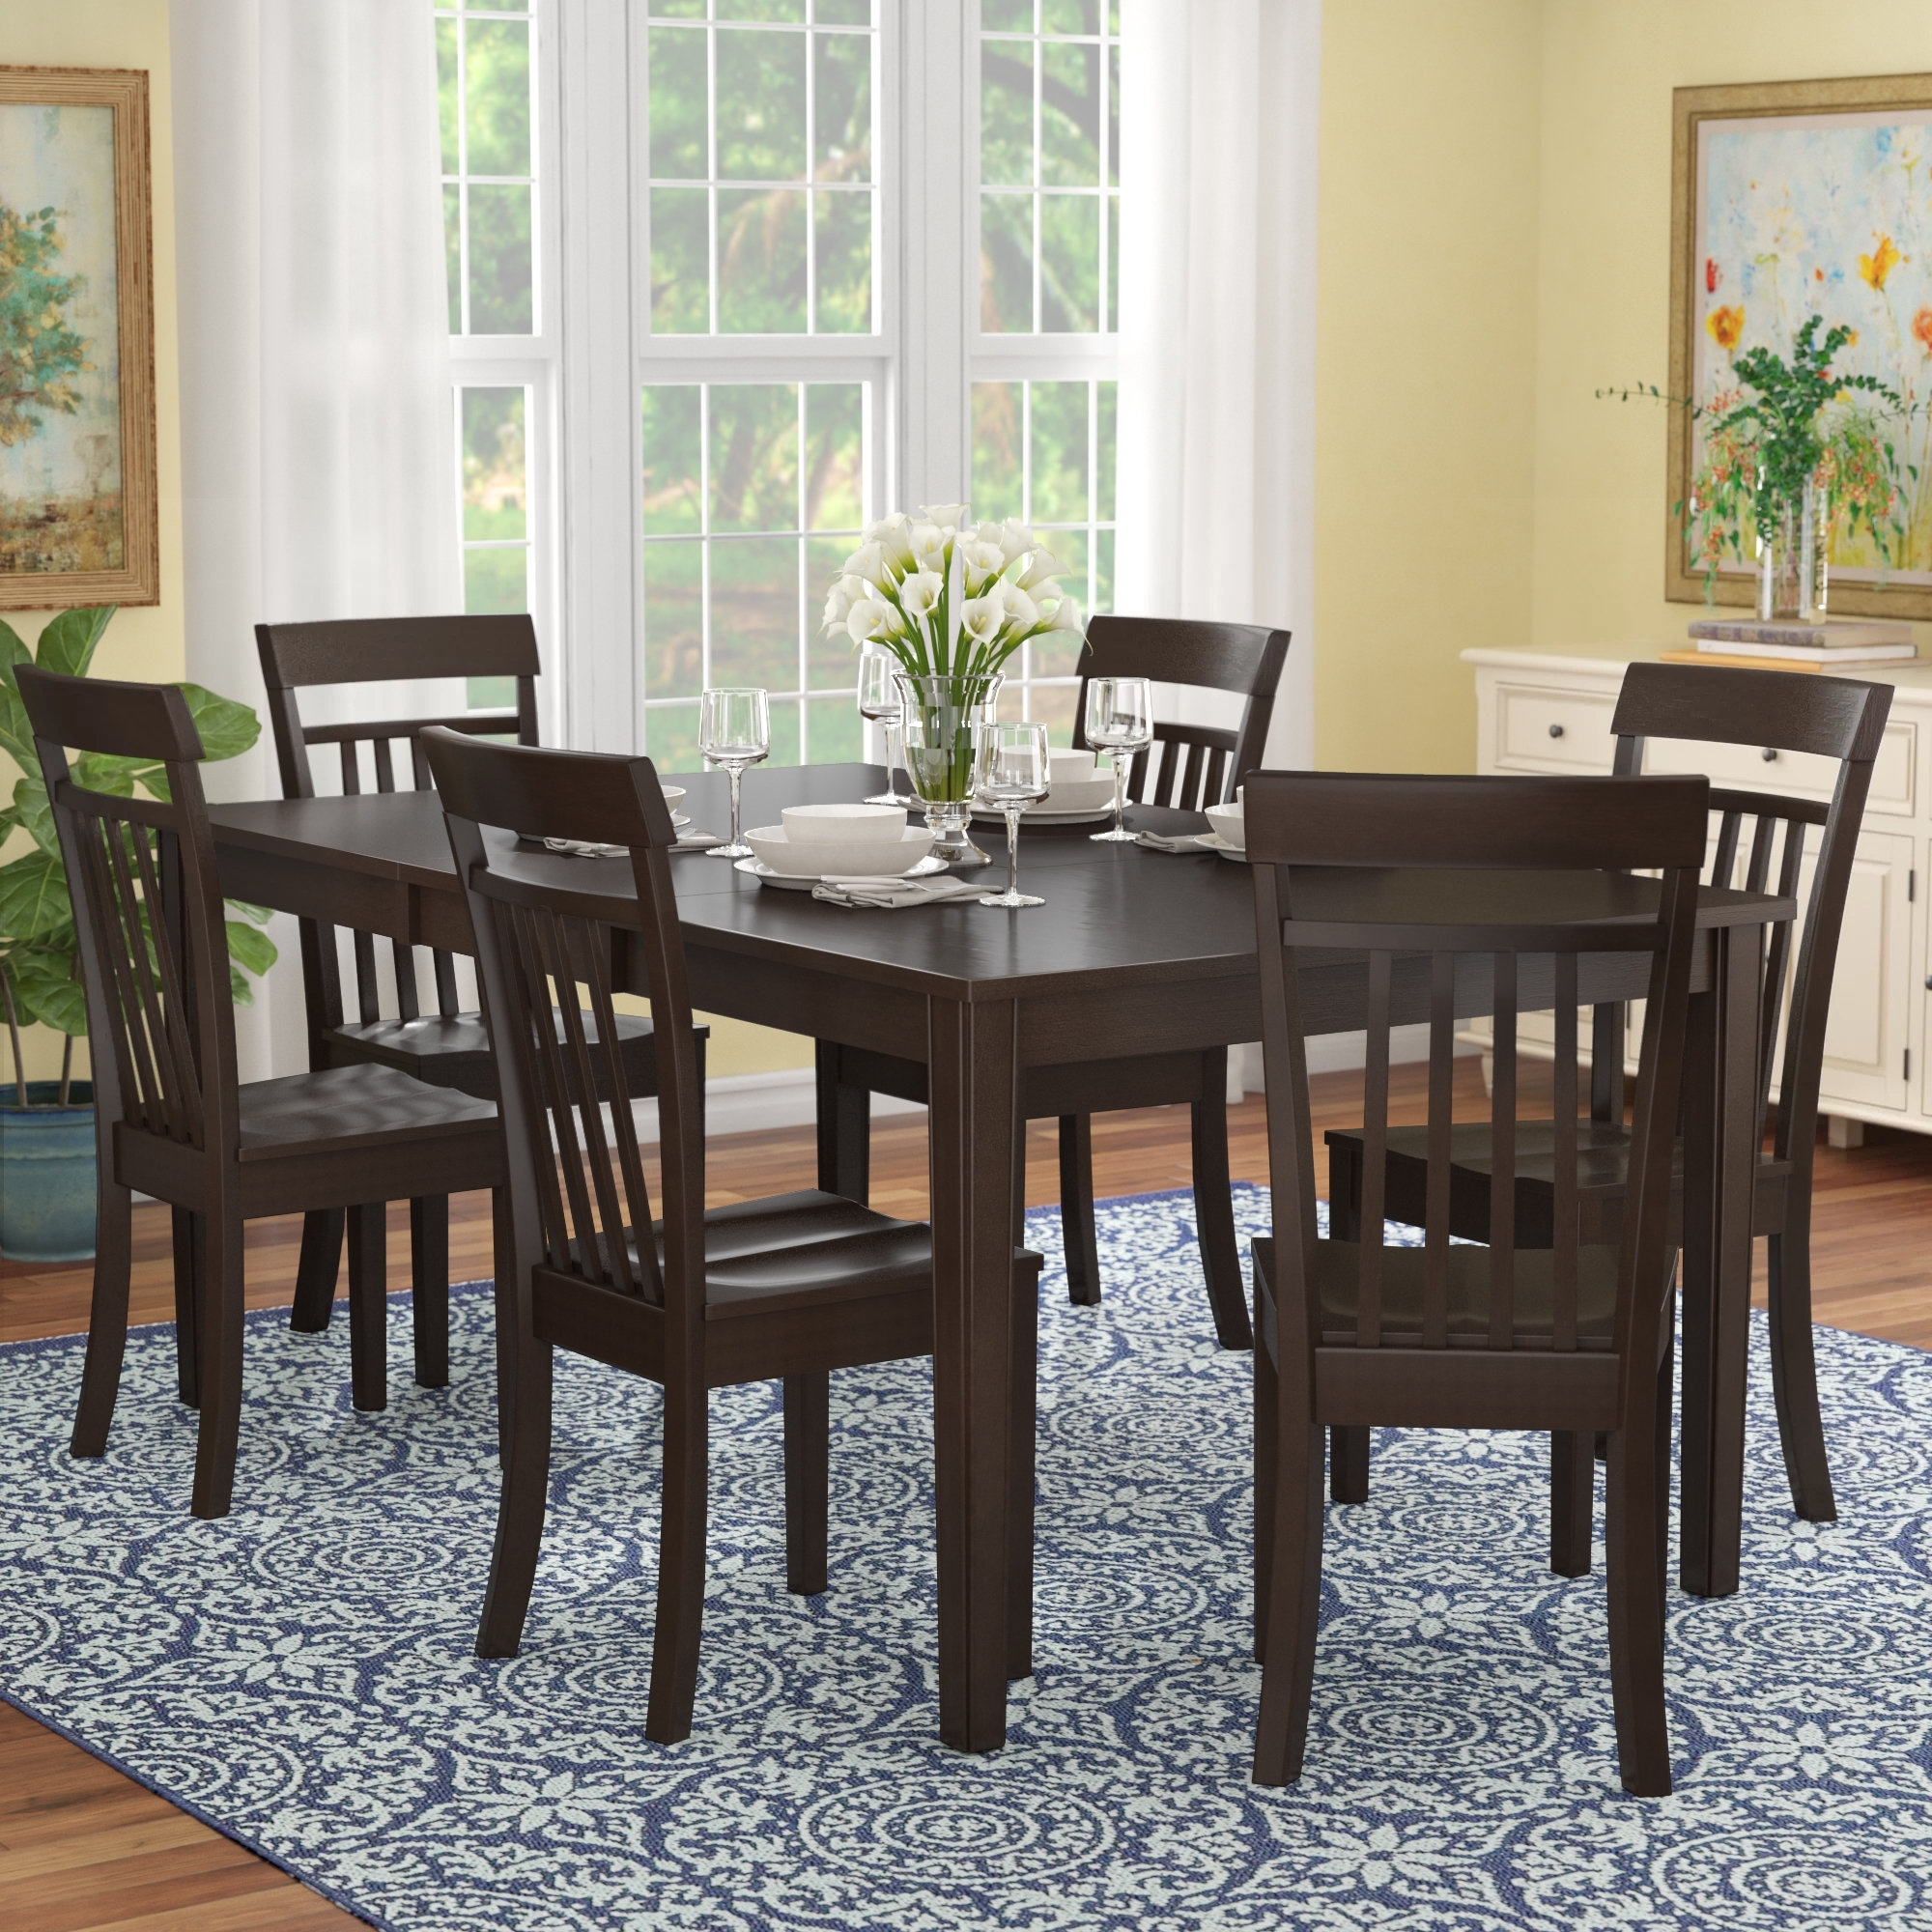 Red Barrel Studio Lindstrom 7 Piece Dining Set & Reviews | Wayfair Within Recent Craftsman 7 Piece Rectangle Extension Dining Sets With Side Chairs (View 20 of 20)